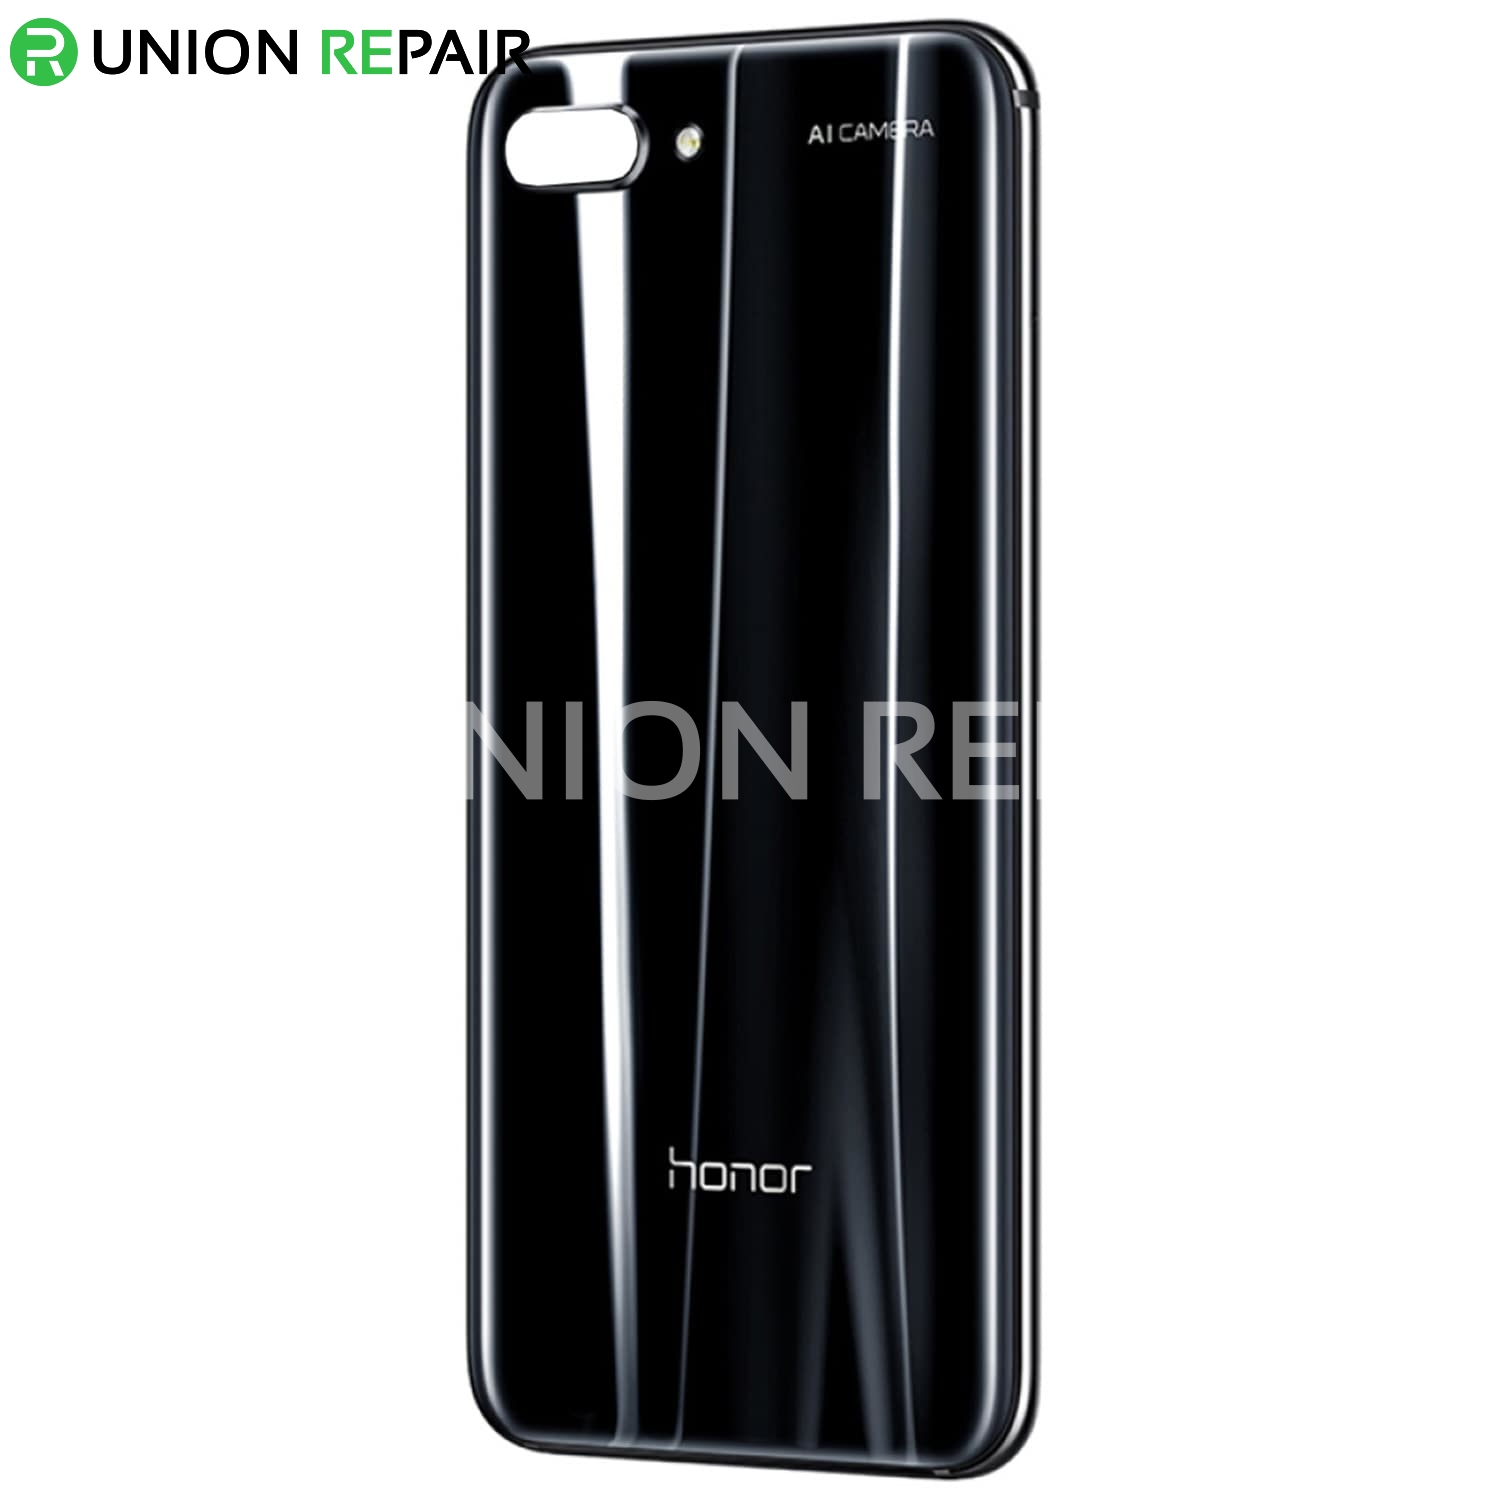 Replacement for Huawei Honor 10 Battery Door with Adhesive - Midnight Black